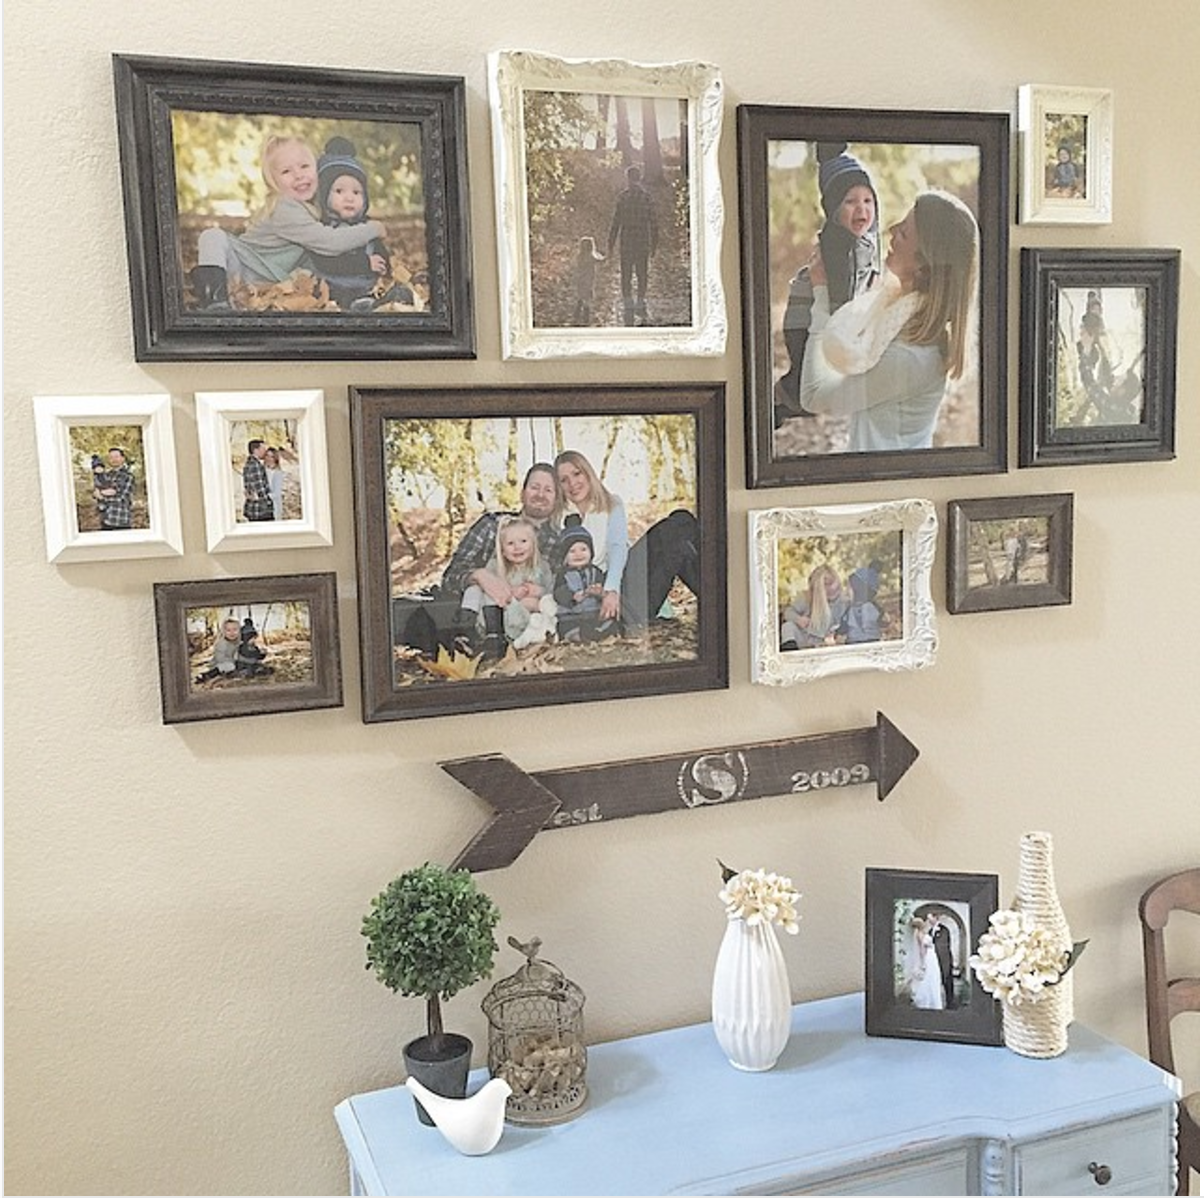 25 must try rustic wall decor ideas featuring the most amazing intended imperfections cute diy Home decoration photo frames